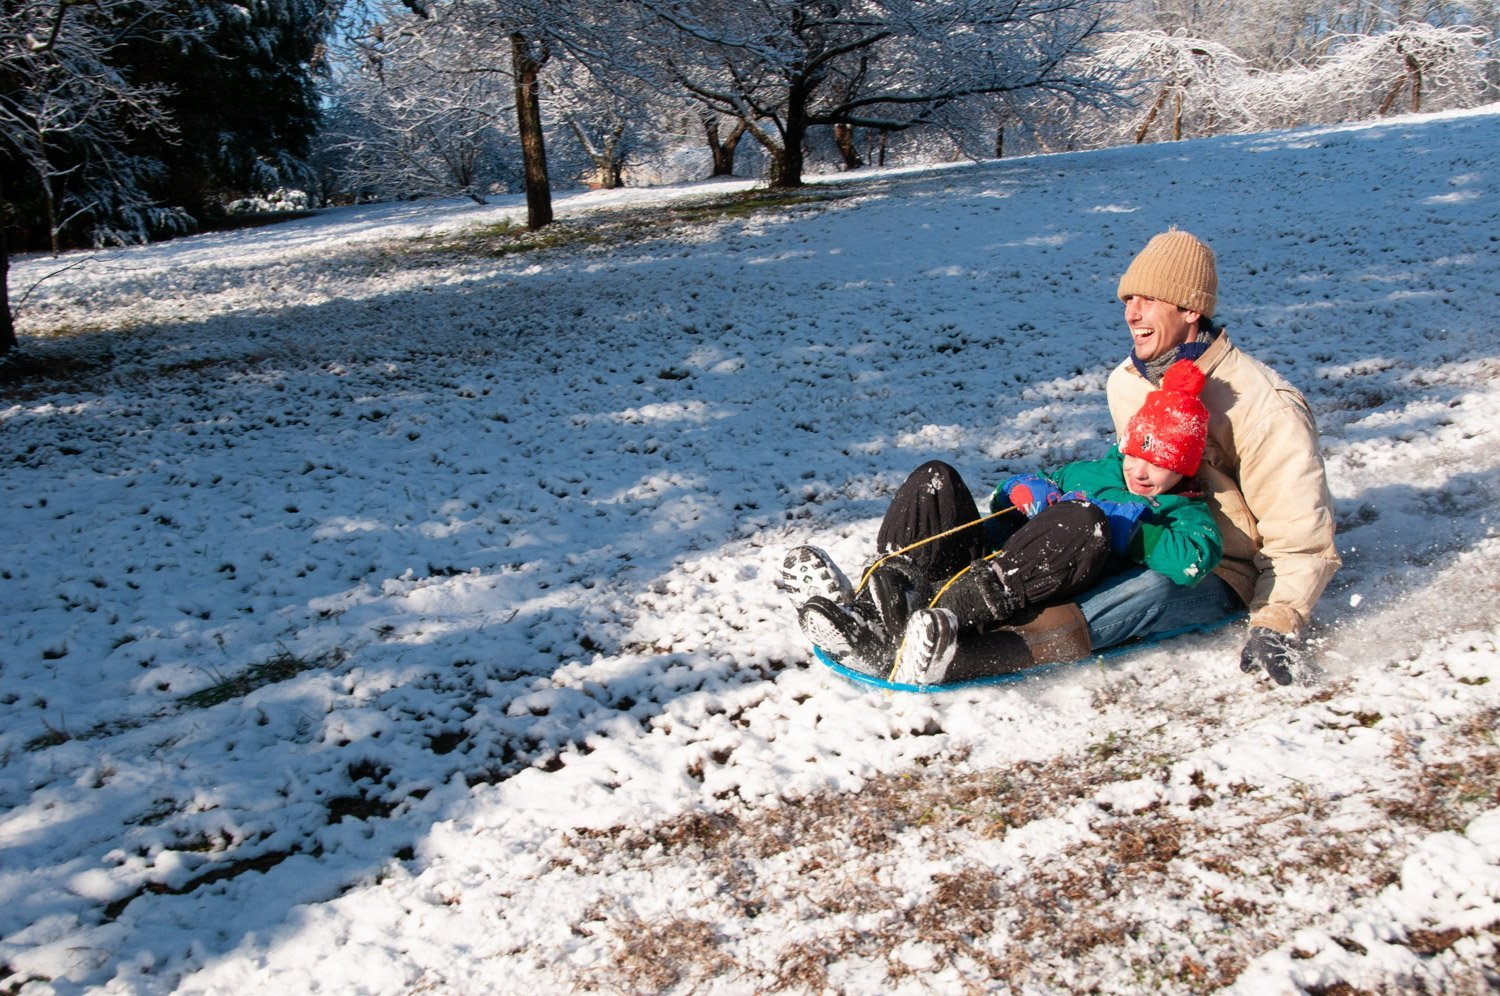 Smiling young man and small boy in a red toboggan sledding on thin covering of snow on a sunny morning